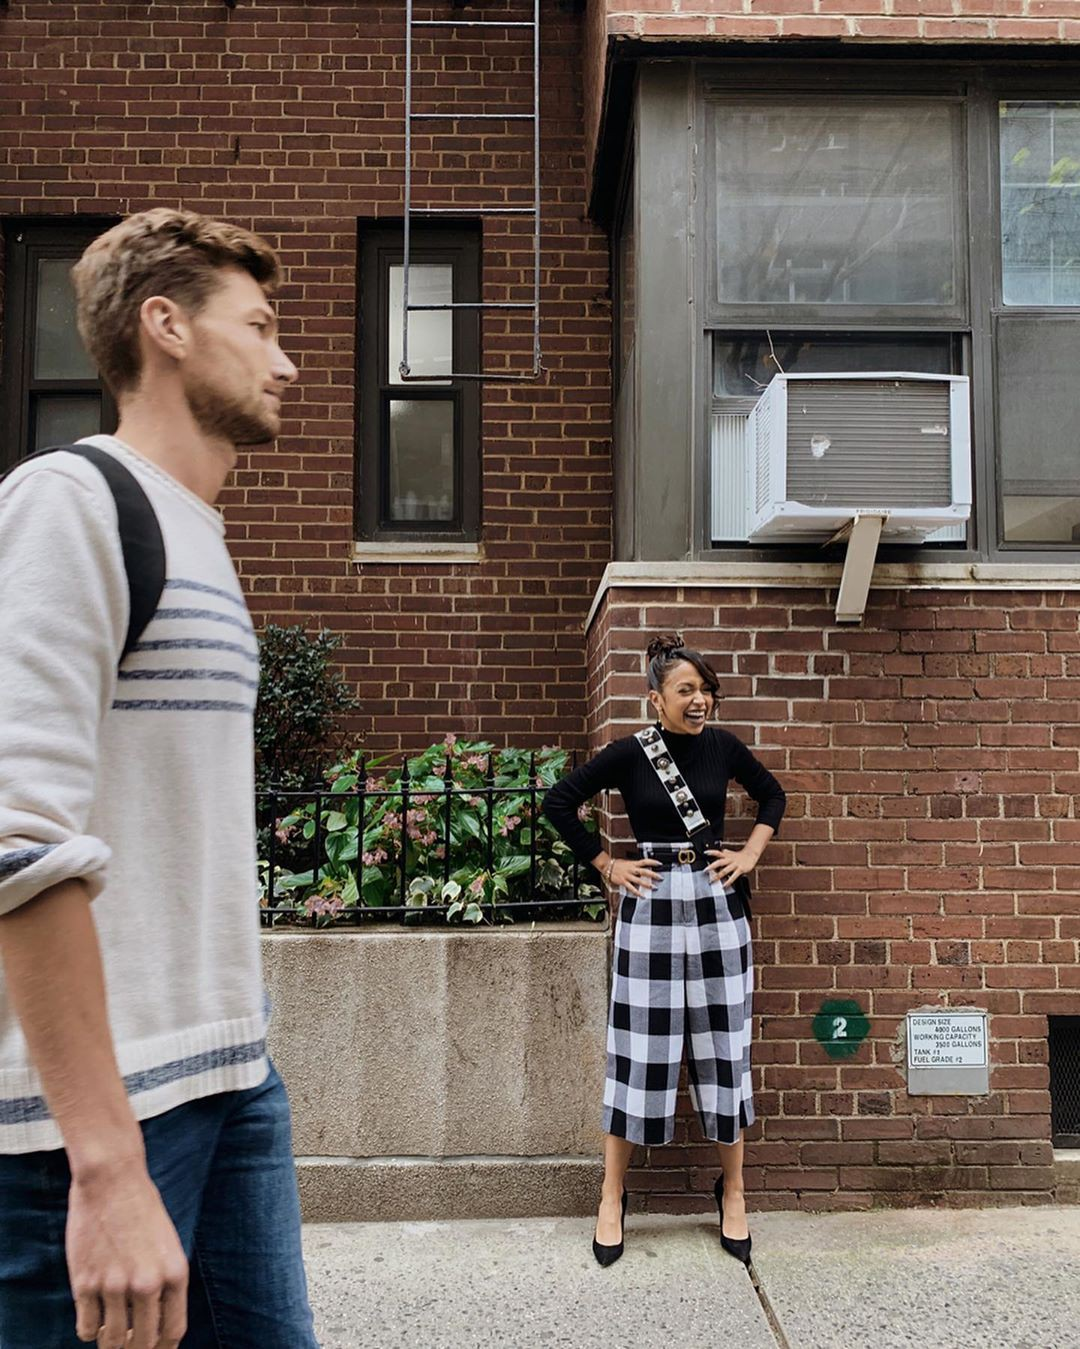 Liza Koshy tartan colour outfit ideas 2020, photography for girl, outfit designs